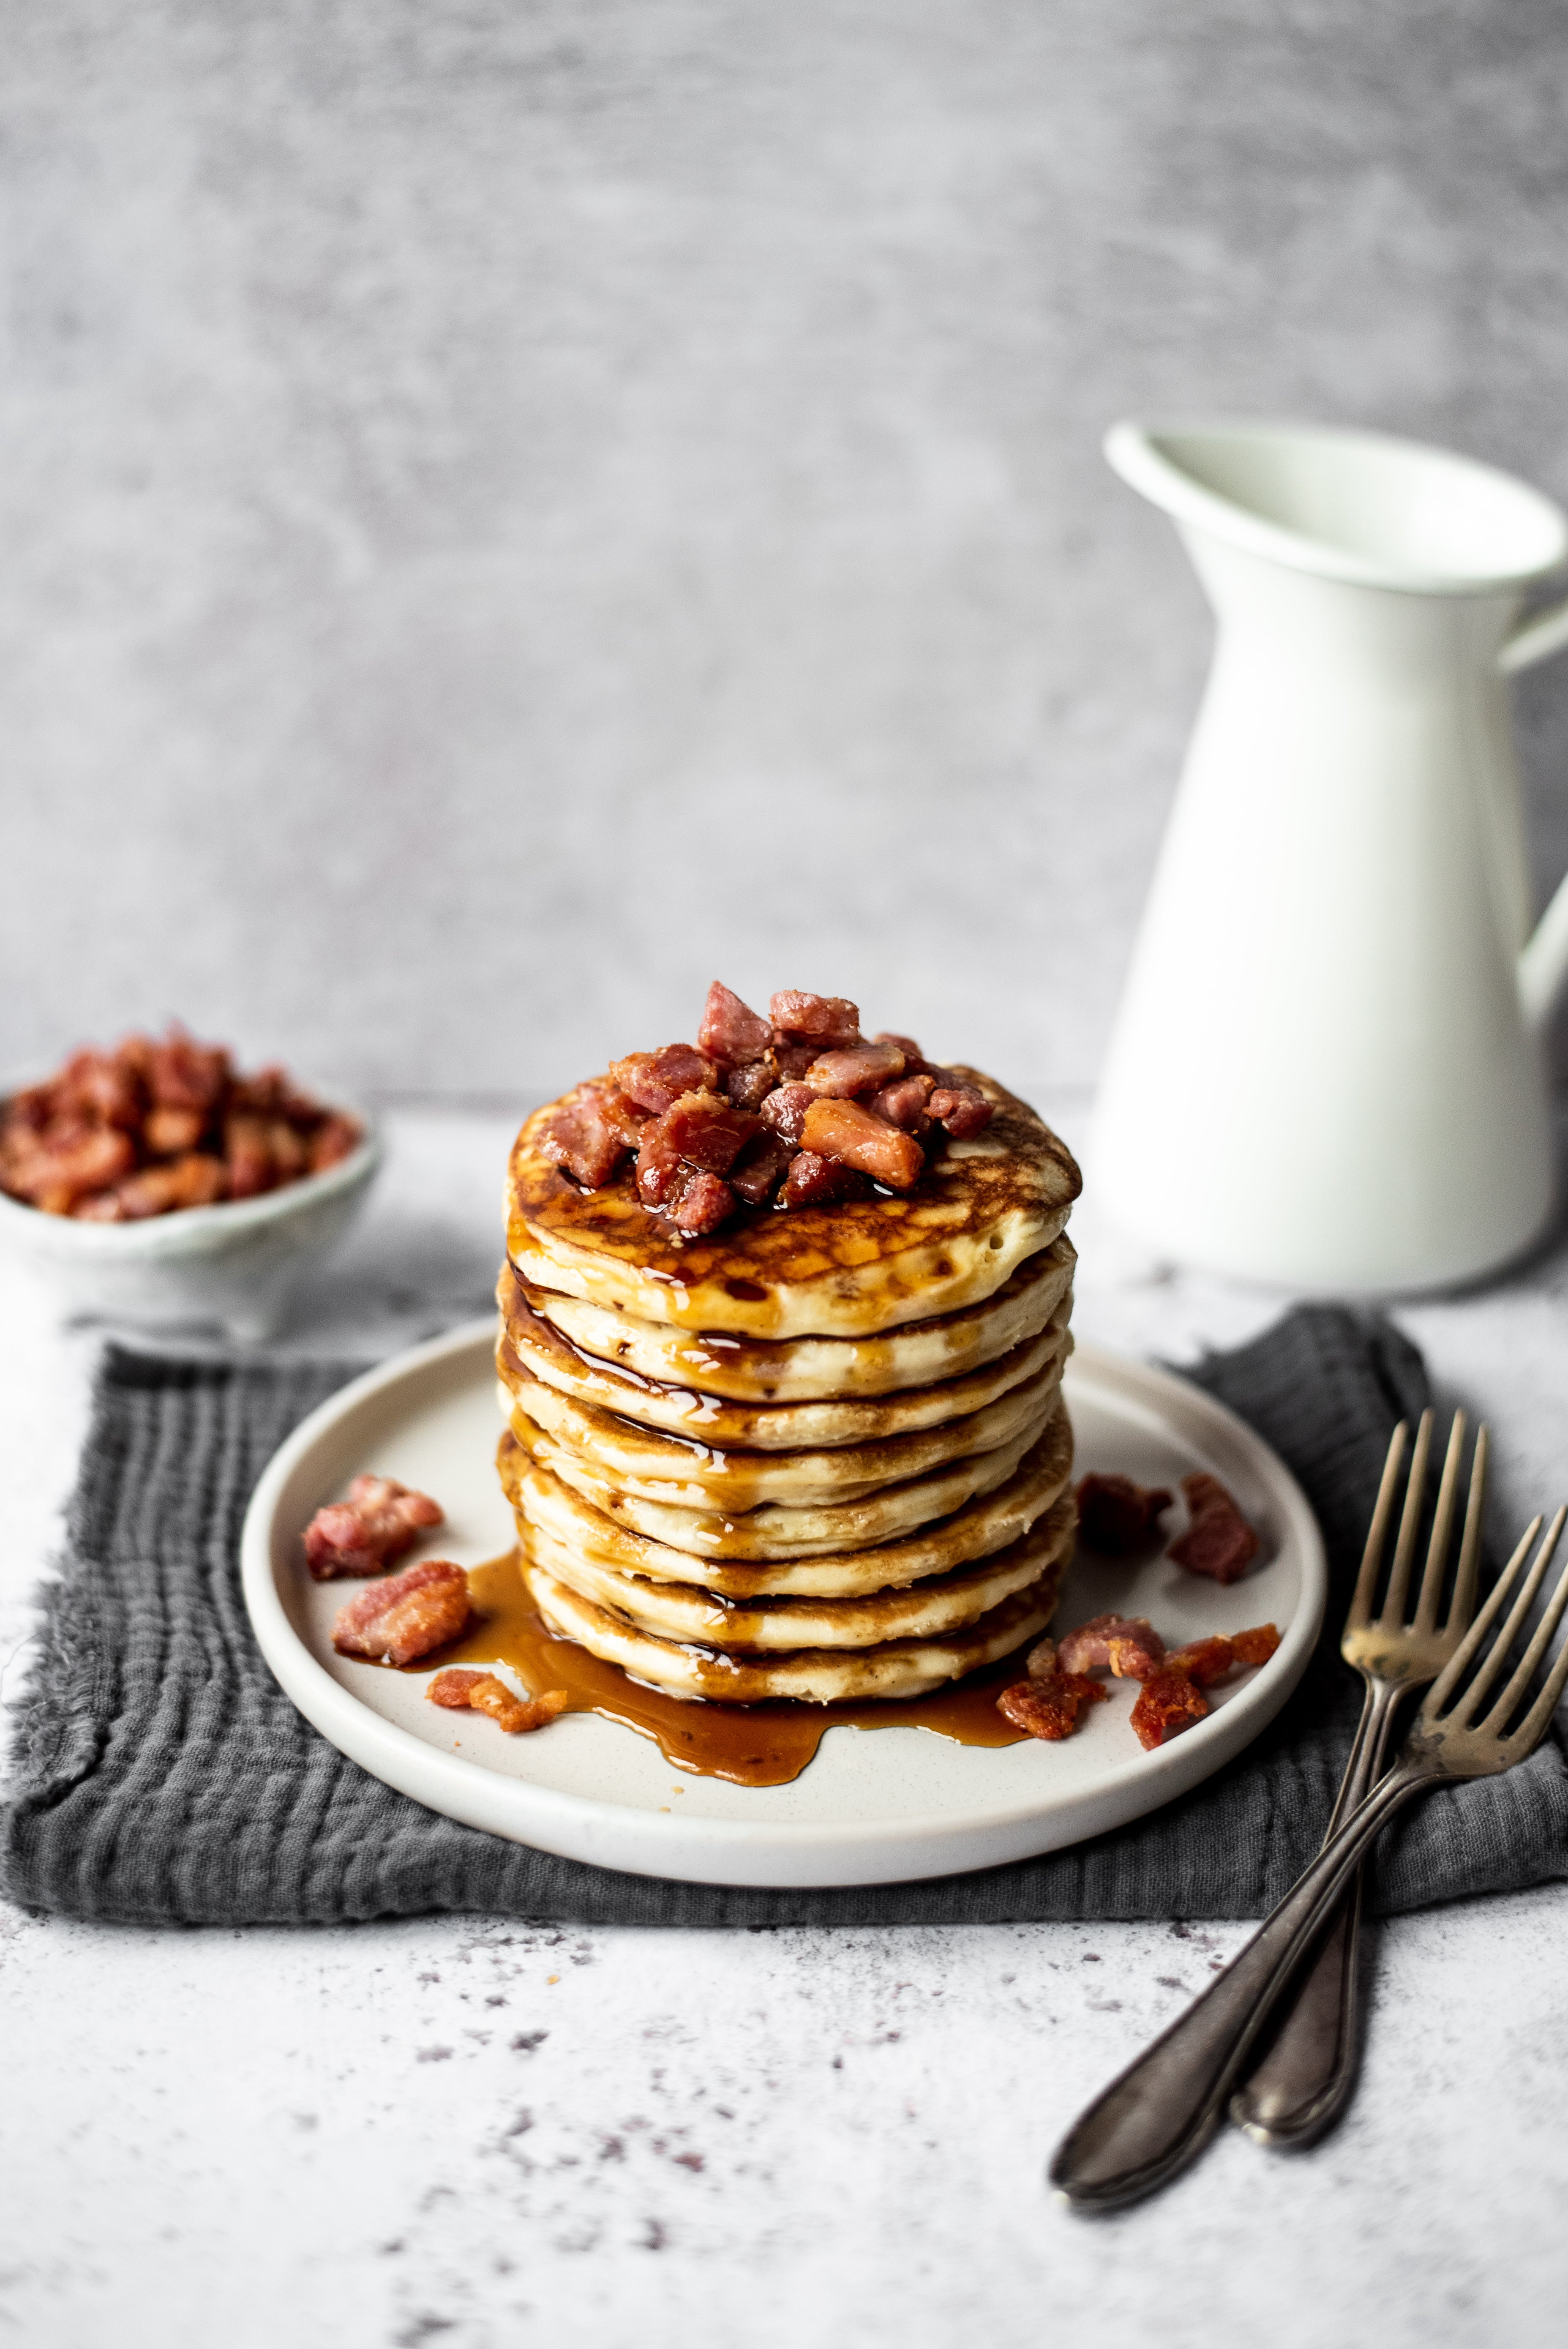 Pancakes with Maple Syrup & Crispy Bacon